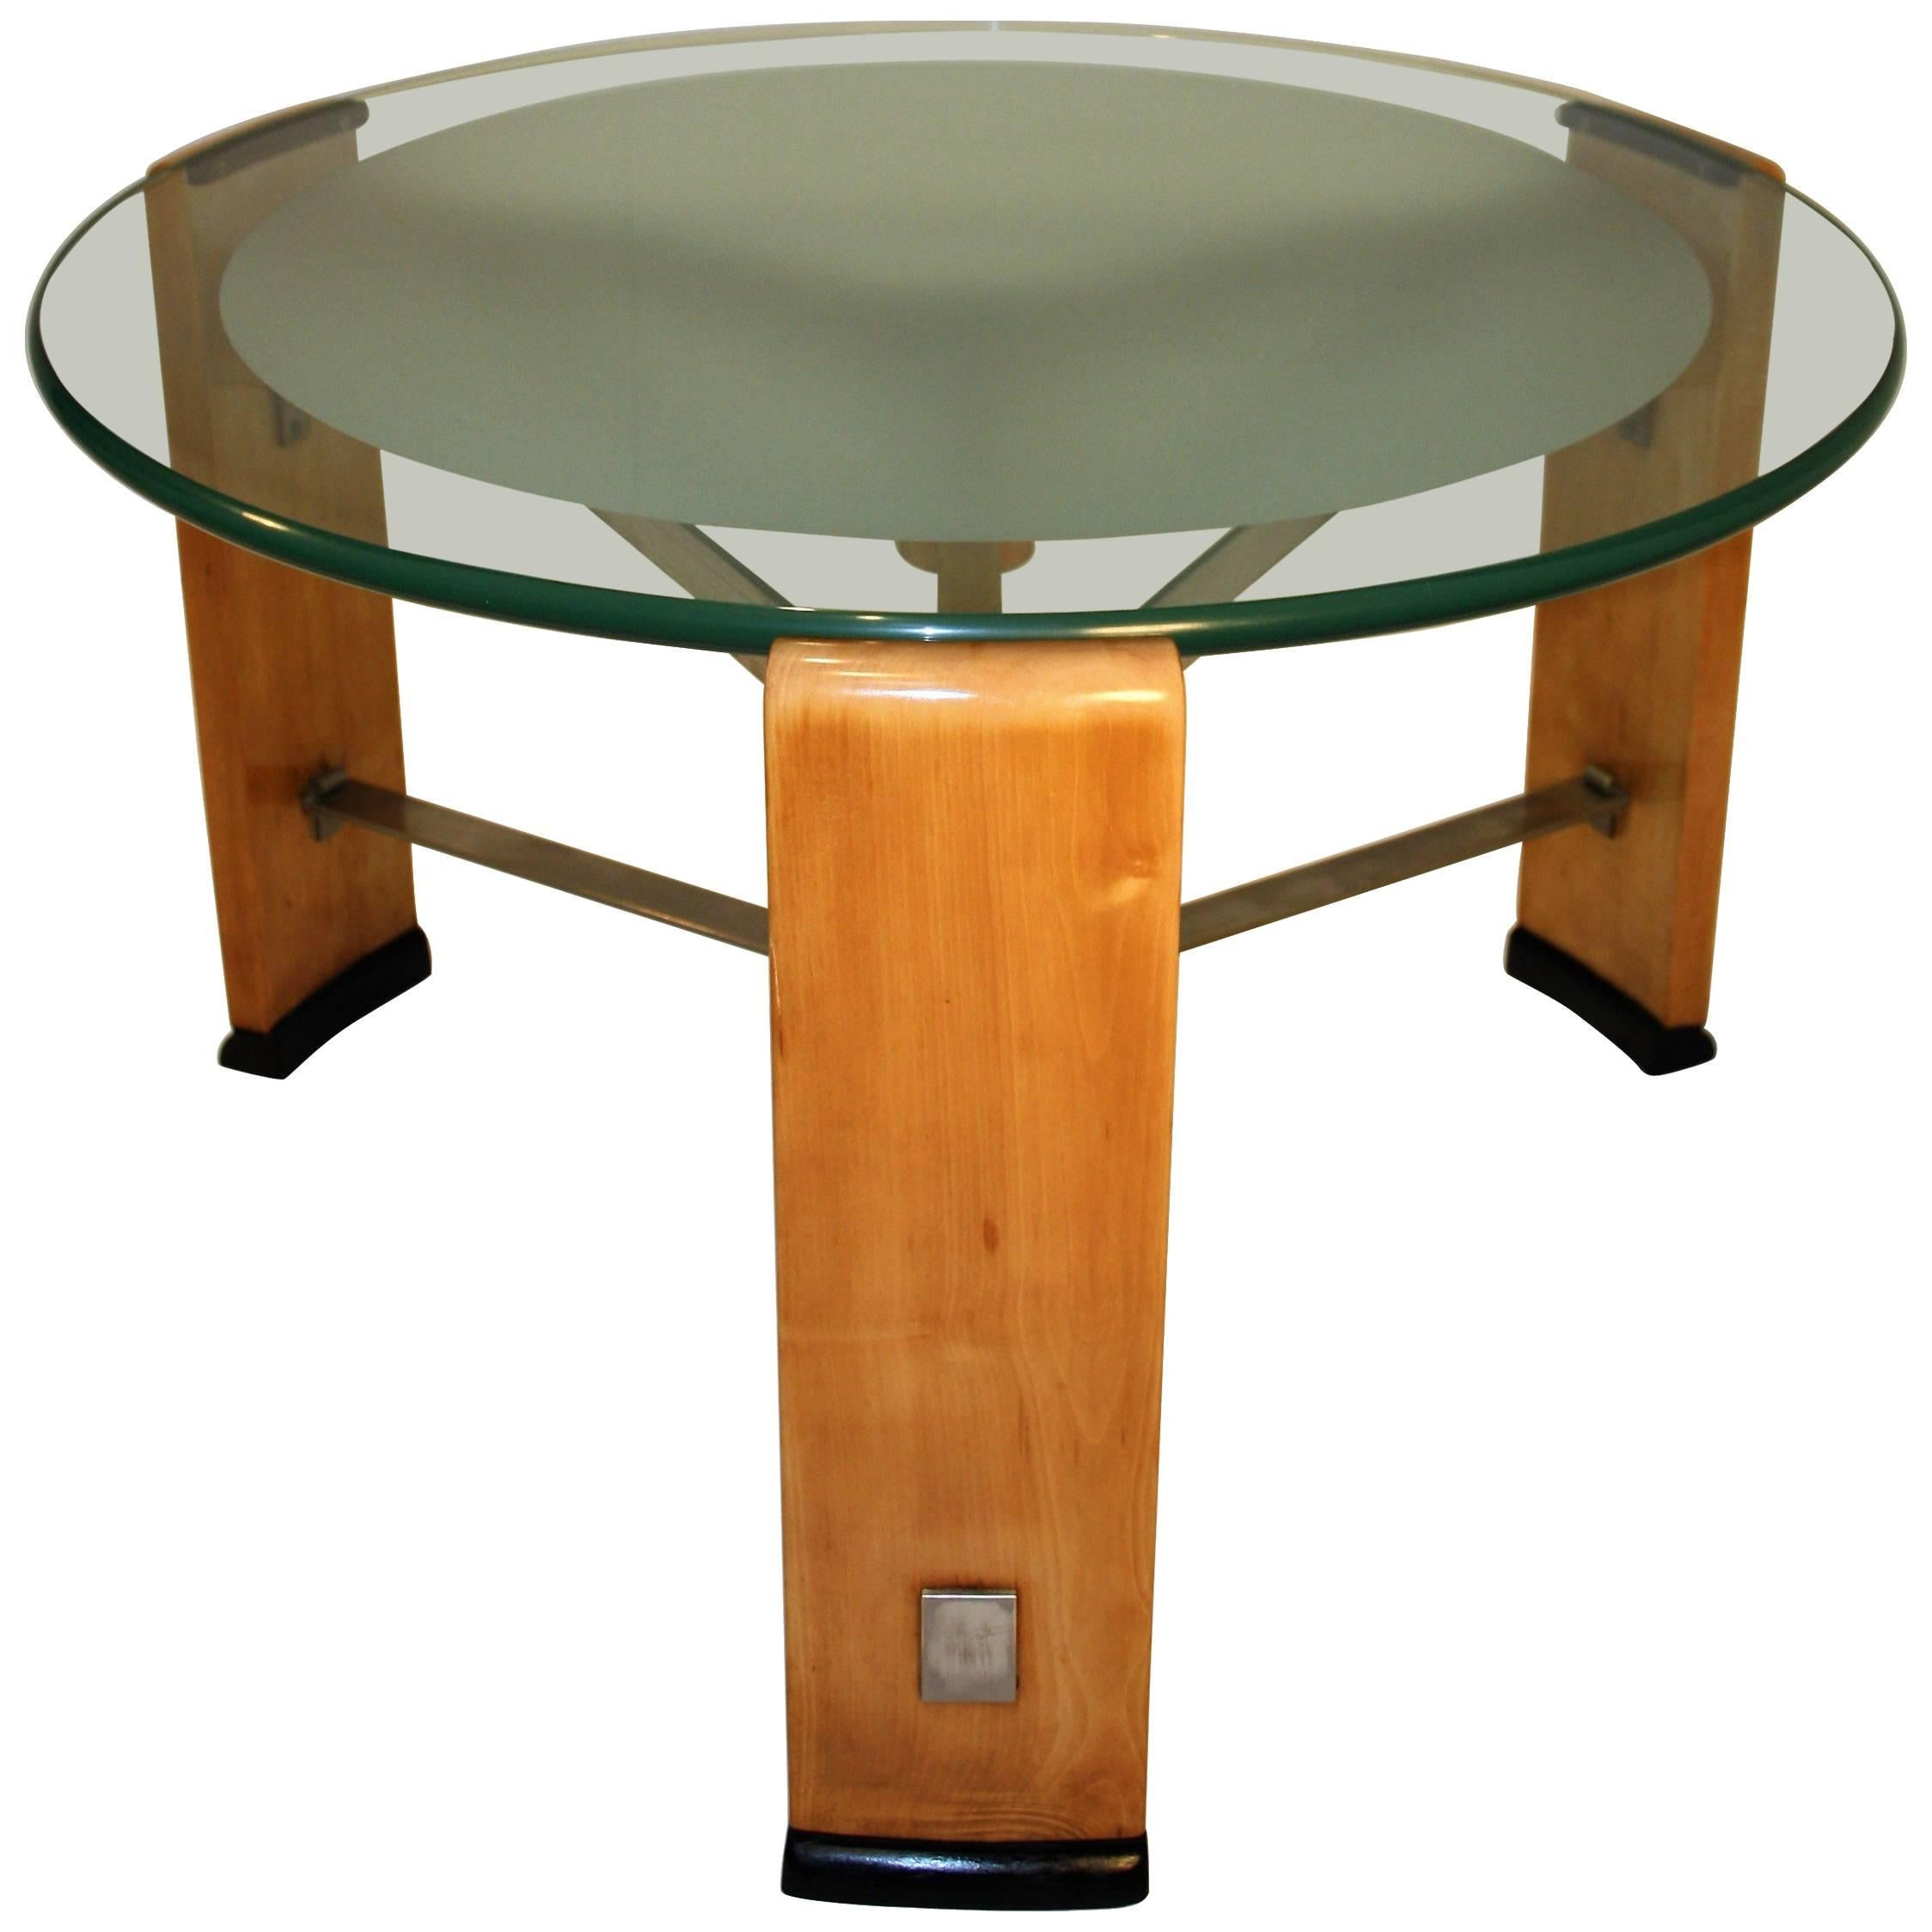 Modernist Art Deco Coffee Table By Chambon, 1920s